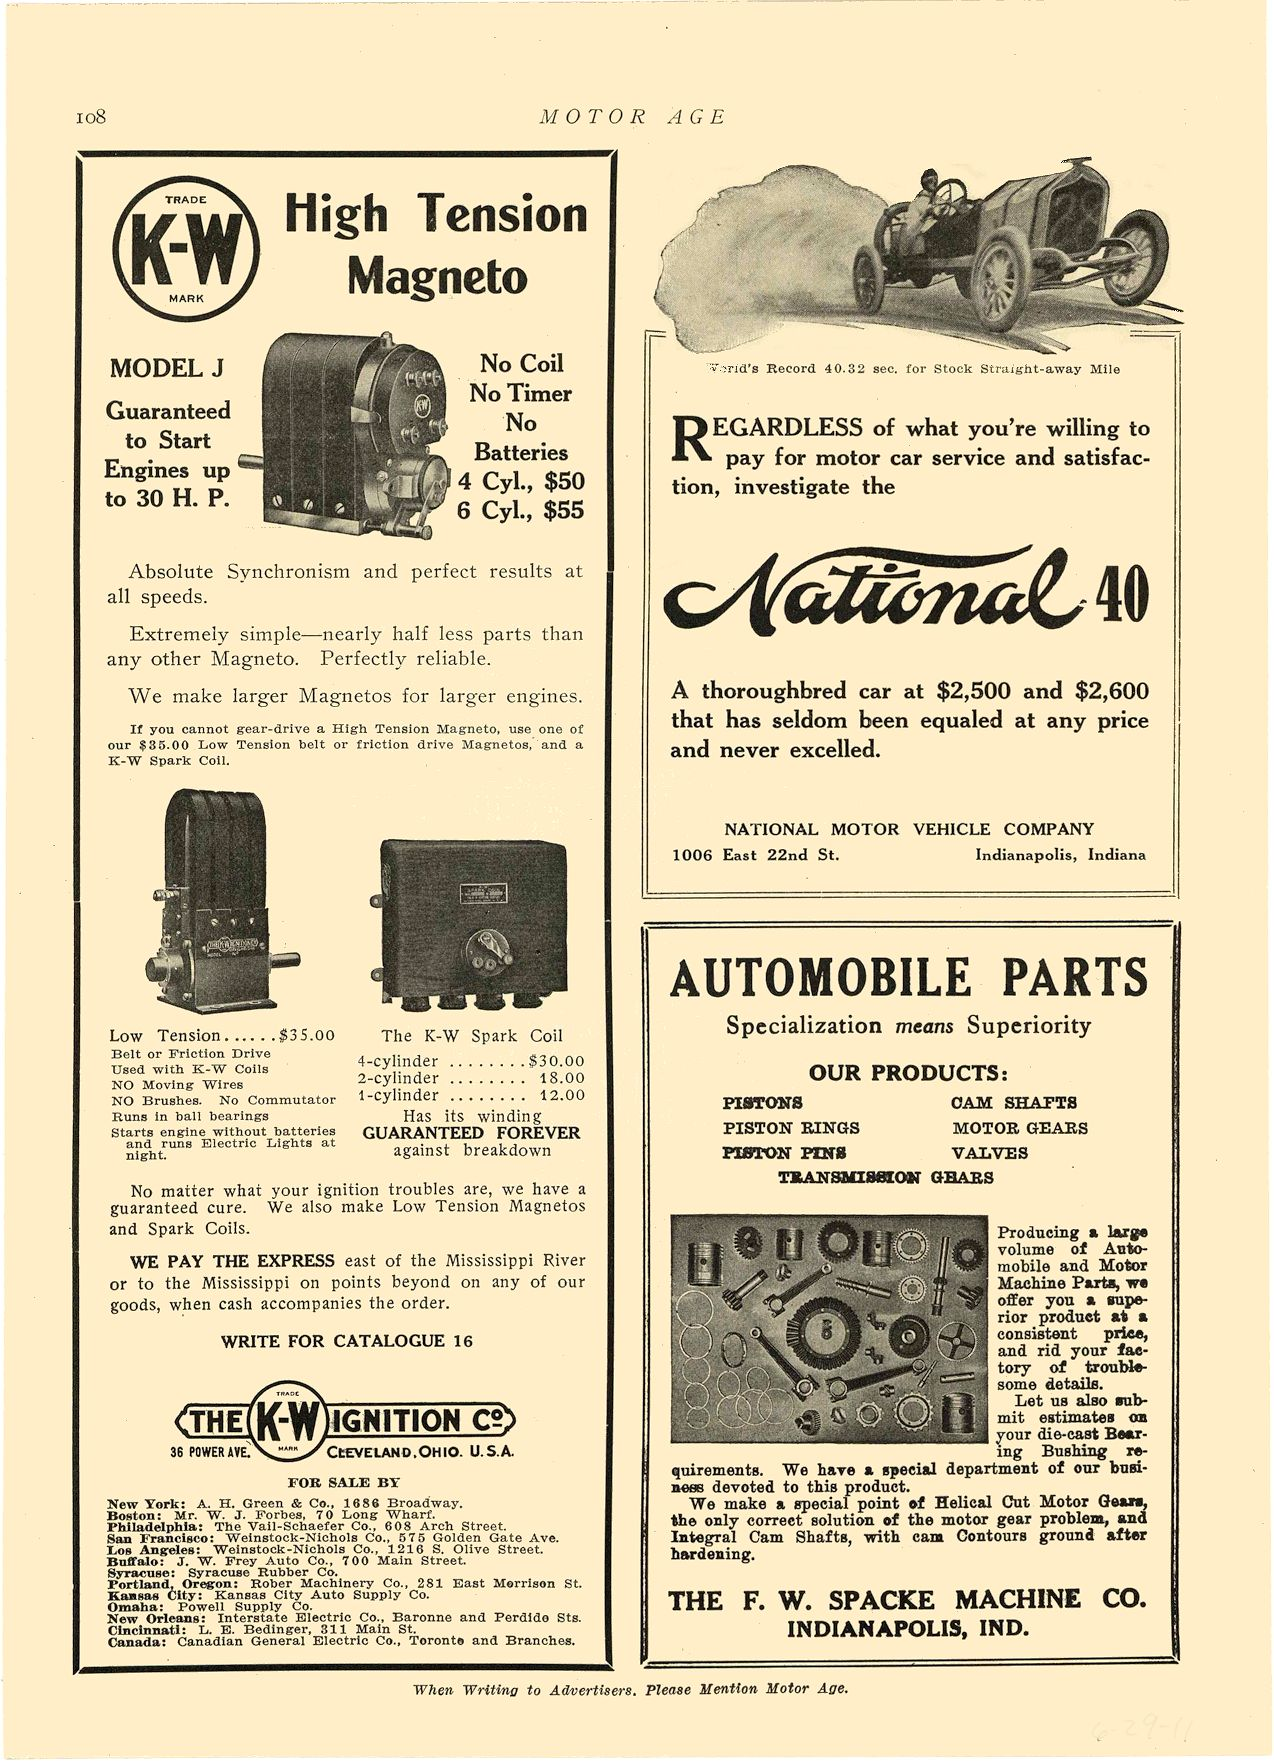 1911 6 29 NATIONAL National 40 NATIONAL MOTOR VEHICLE COMPANY Indianapolis, IND MOTOR AGE June 29, 1911 8.5″x11.75″ page 108